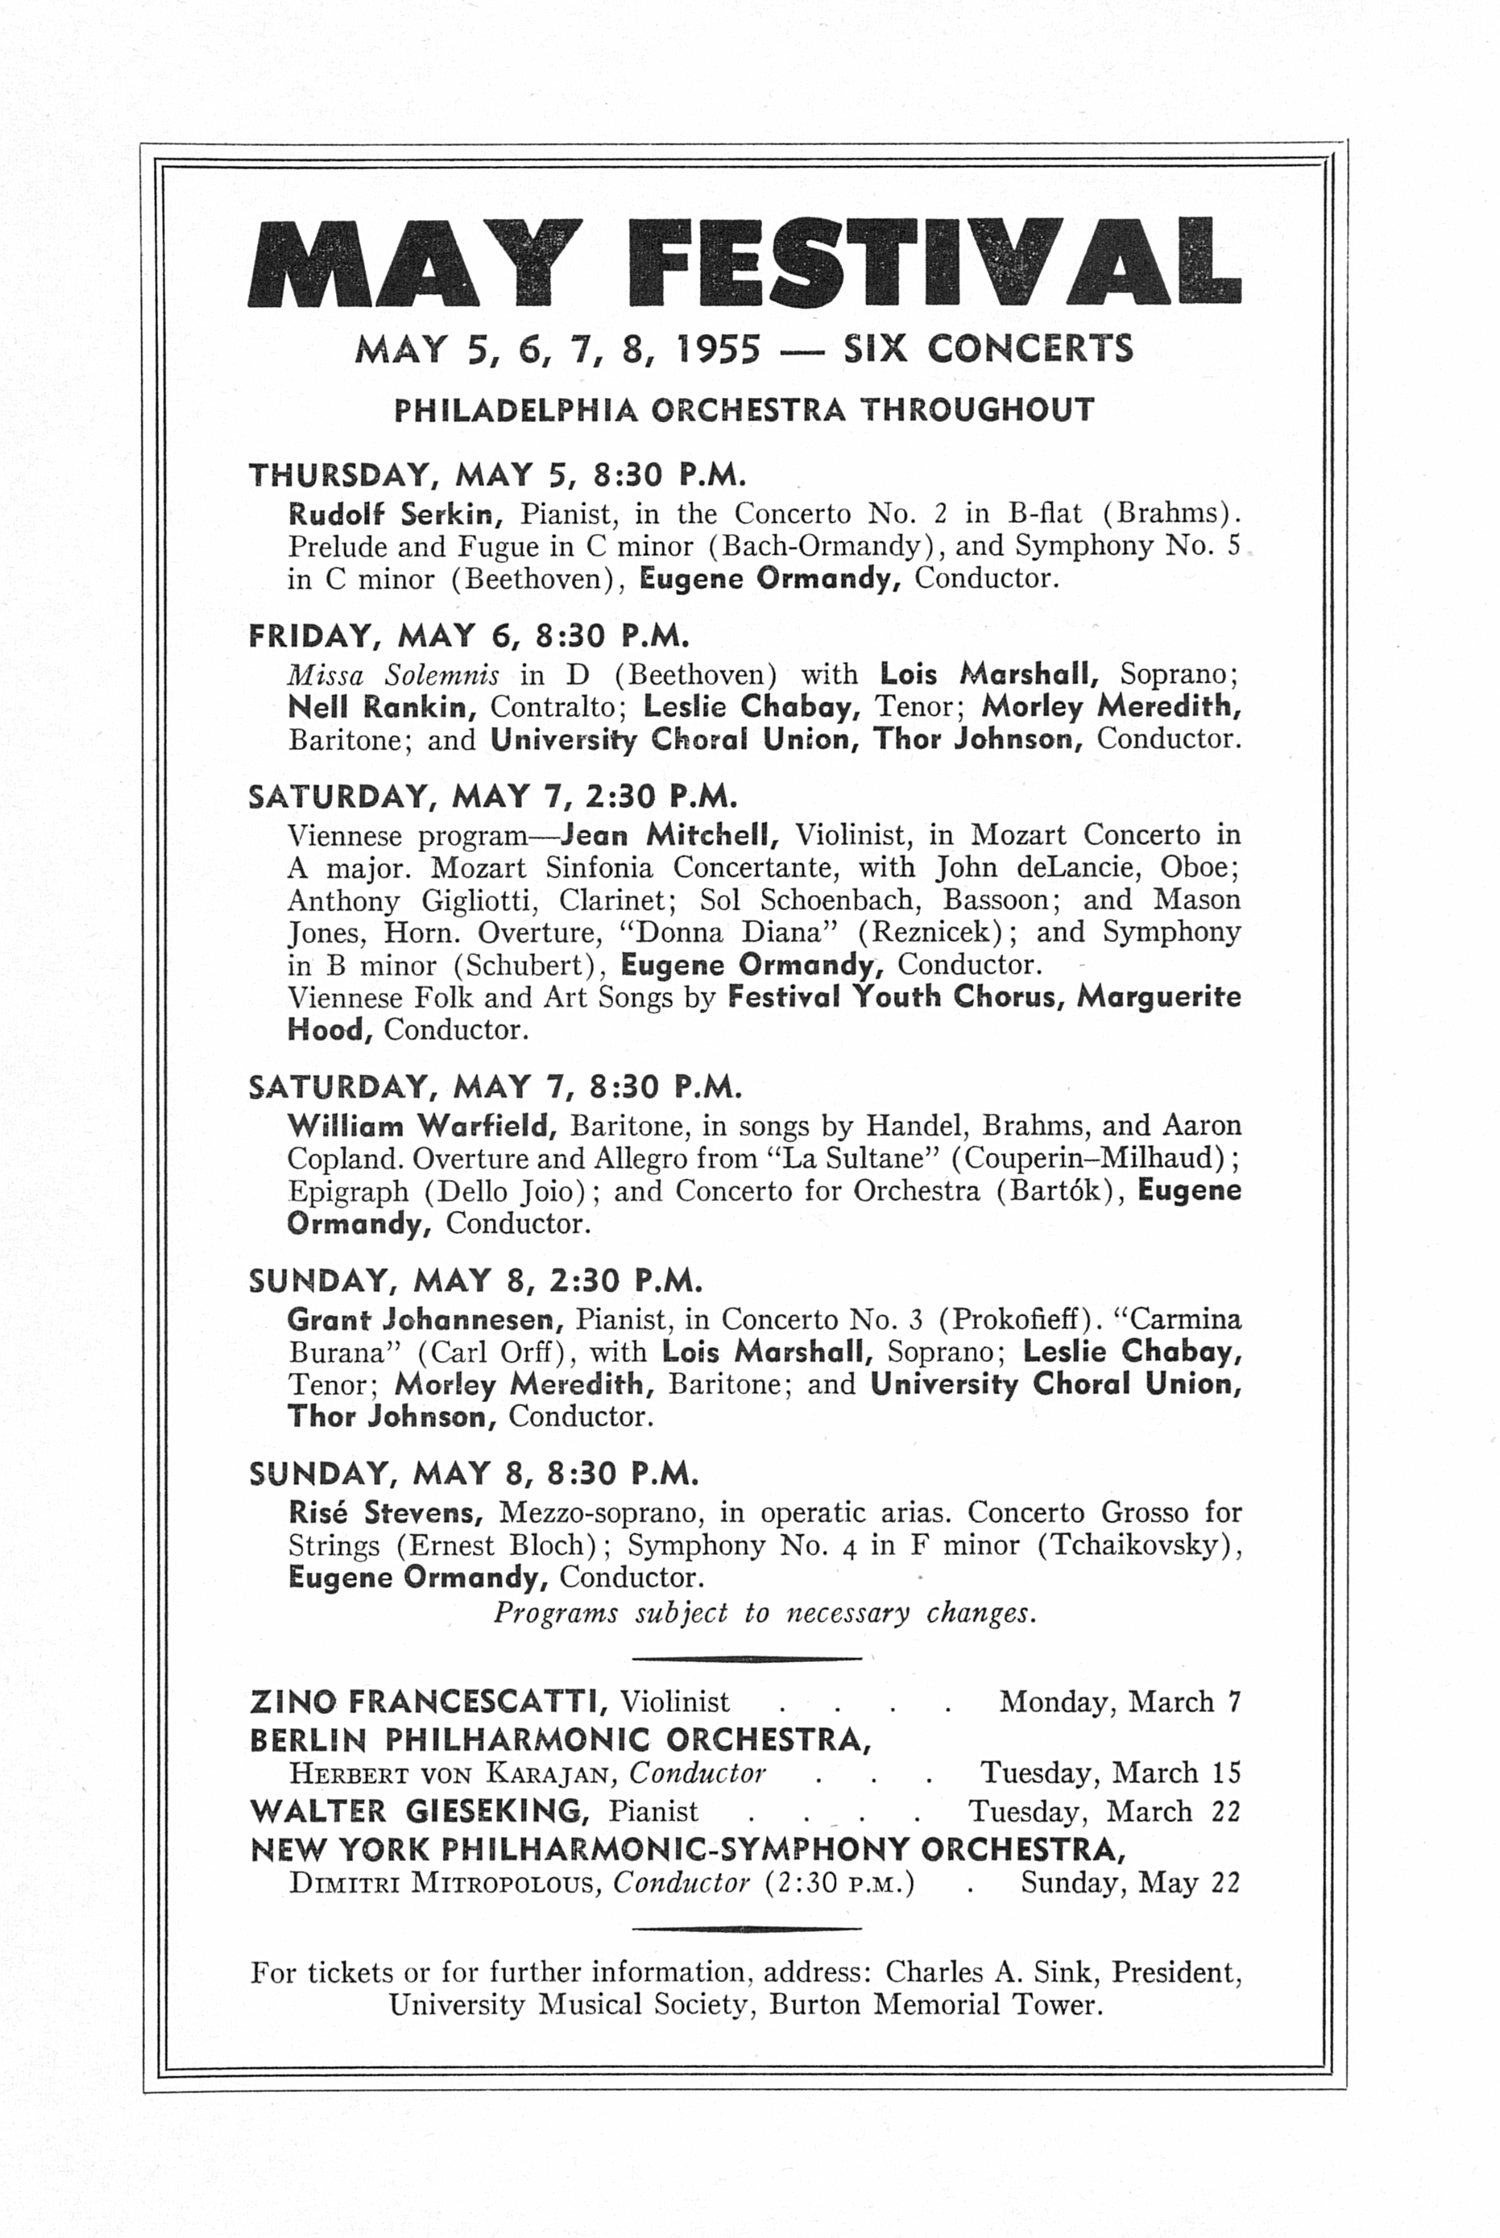 UMS Concert Program, February 20, 1955: Fifteenth Annual Chamber Music Festival -- Budapest String Quartet image